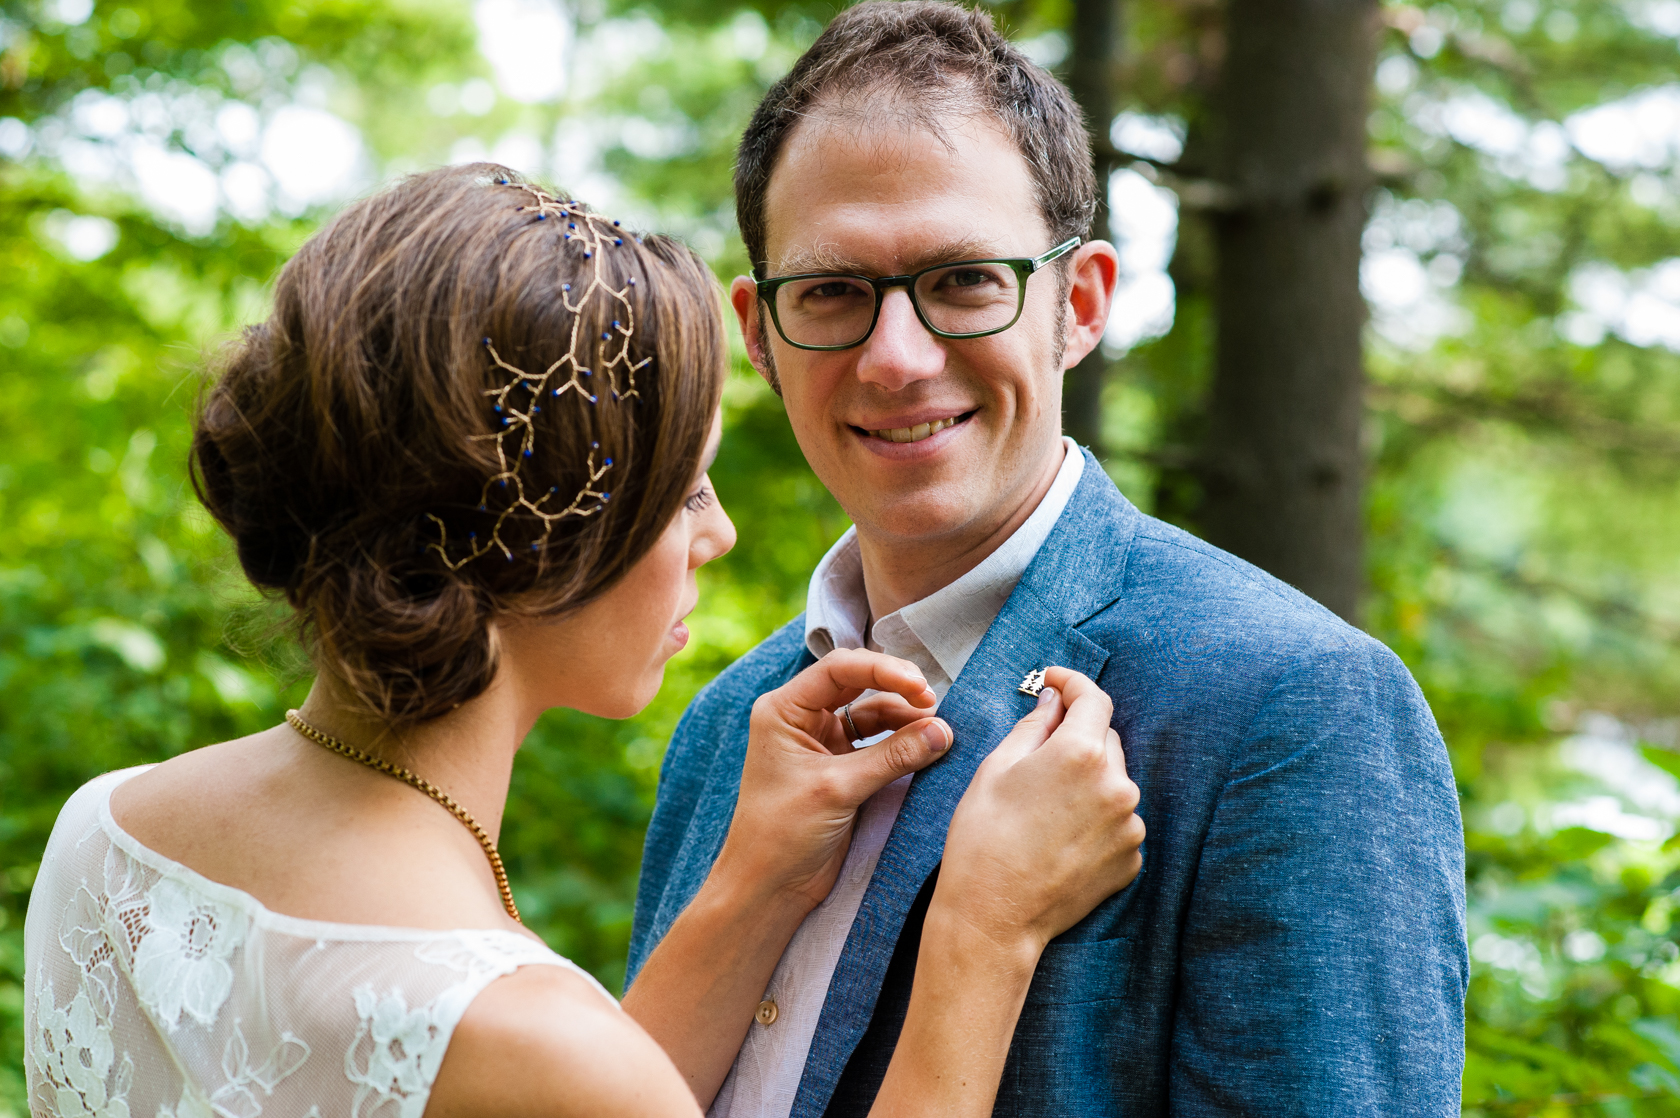 bride pins a lapel she made on her handsome groom